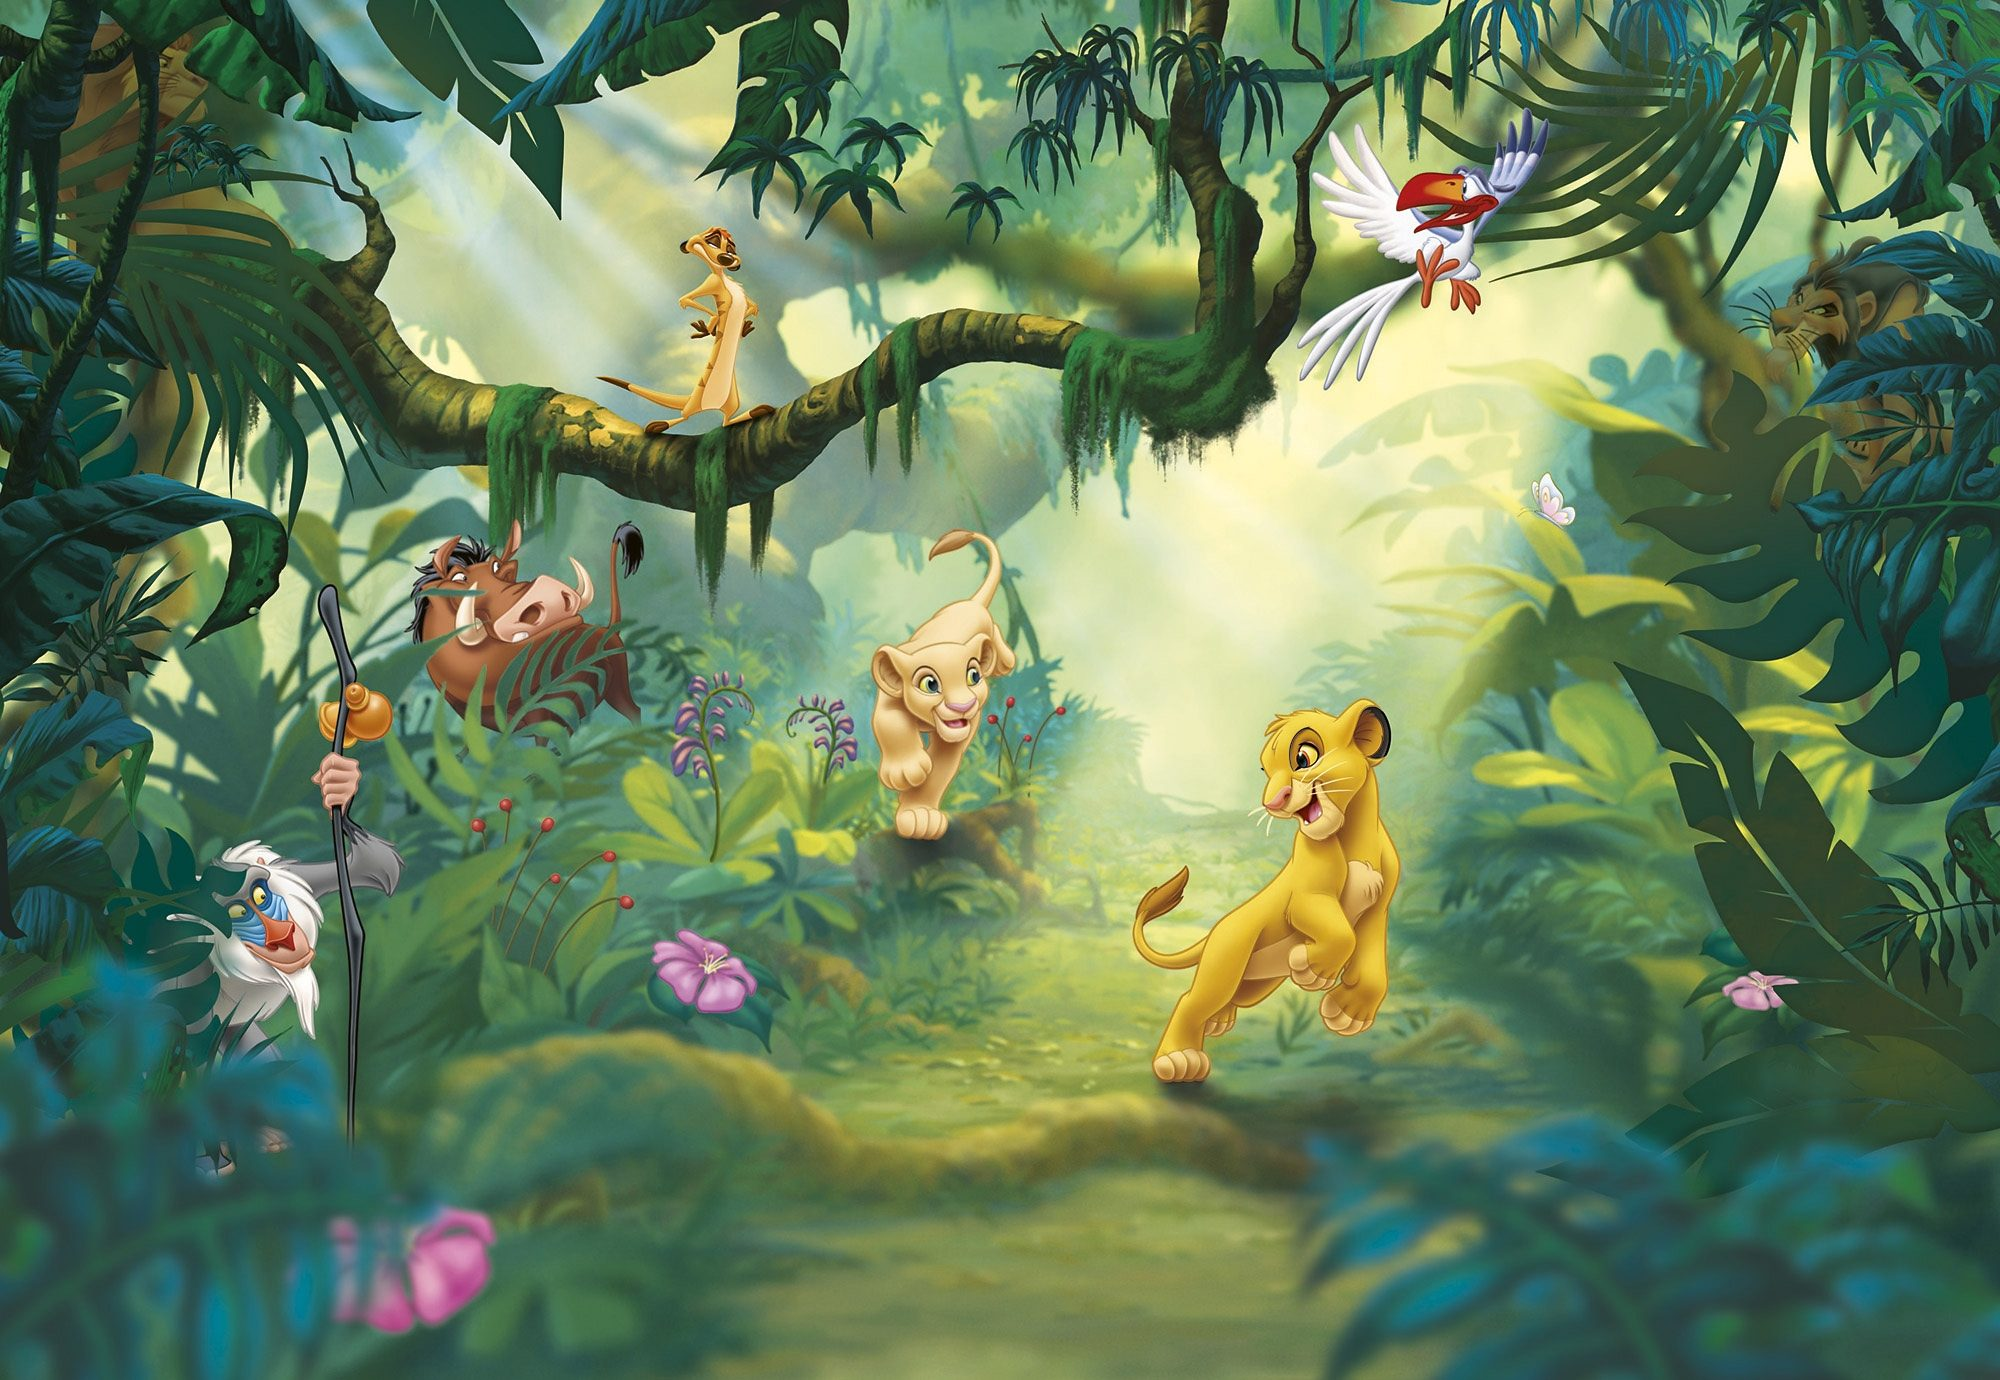 Komar, Papiertapete, » Lion King Jungle«, 368/254 cm